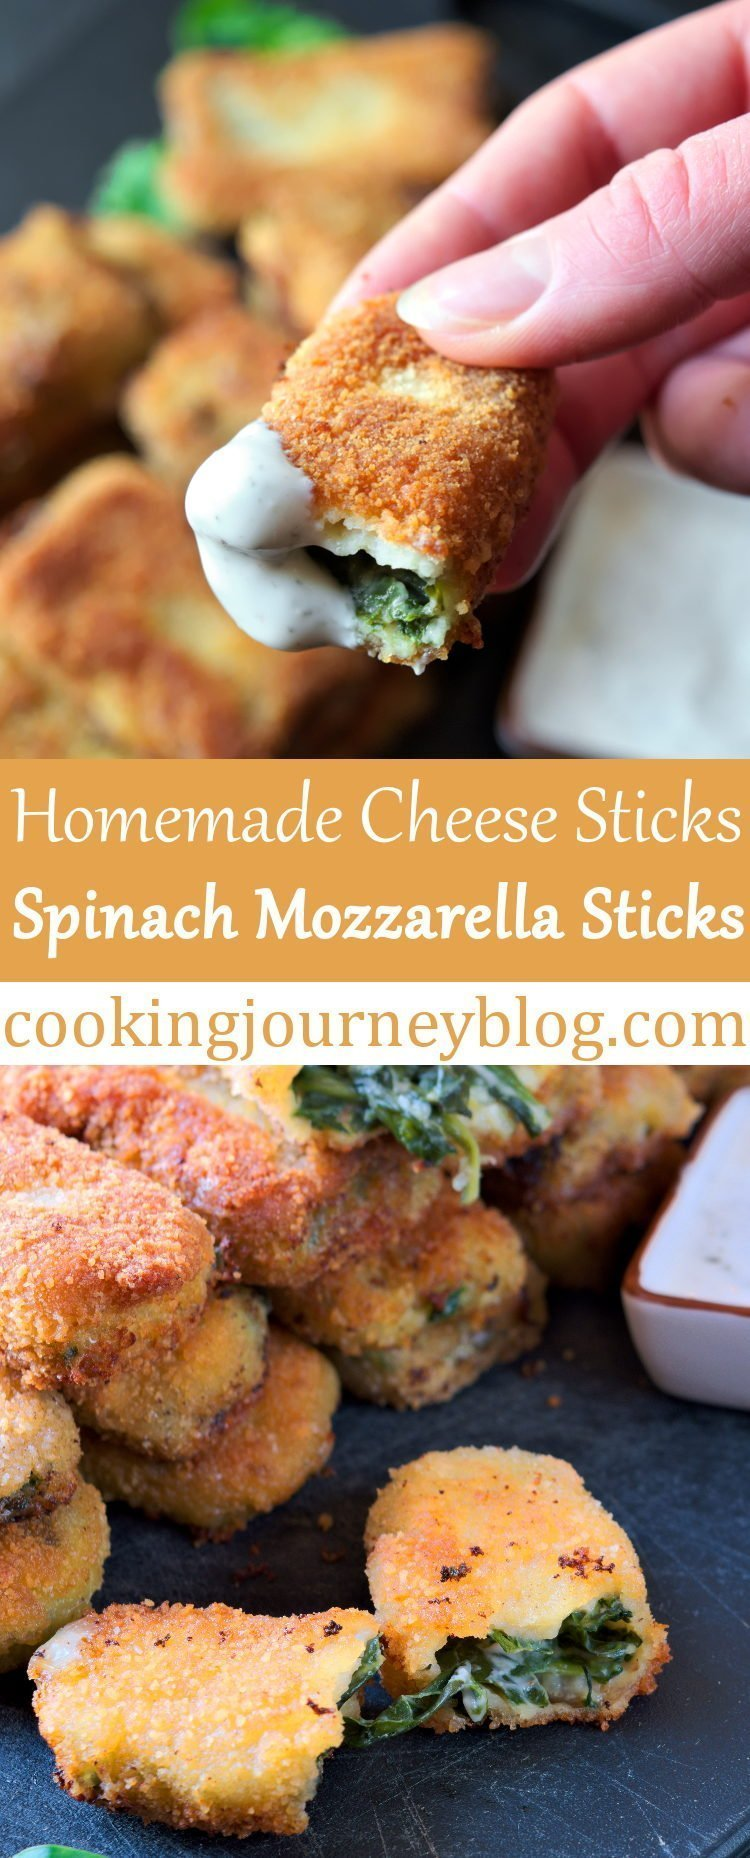 Spinach mozzarella sticks appetizers are perfect for party or watching sports game. Homemade cheese sticks are tasty, loaded with spinach and cheese. Grab this mozzarella sticks recipe for next party snack!